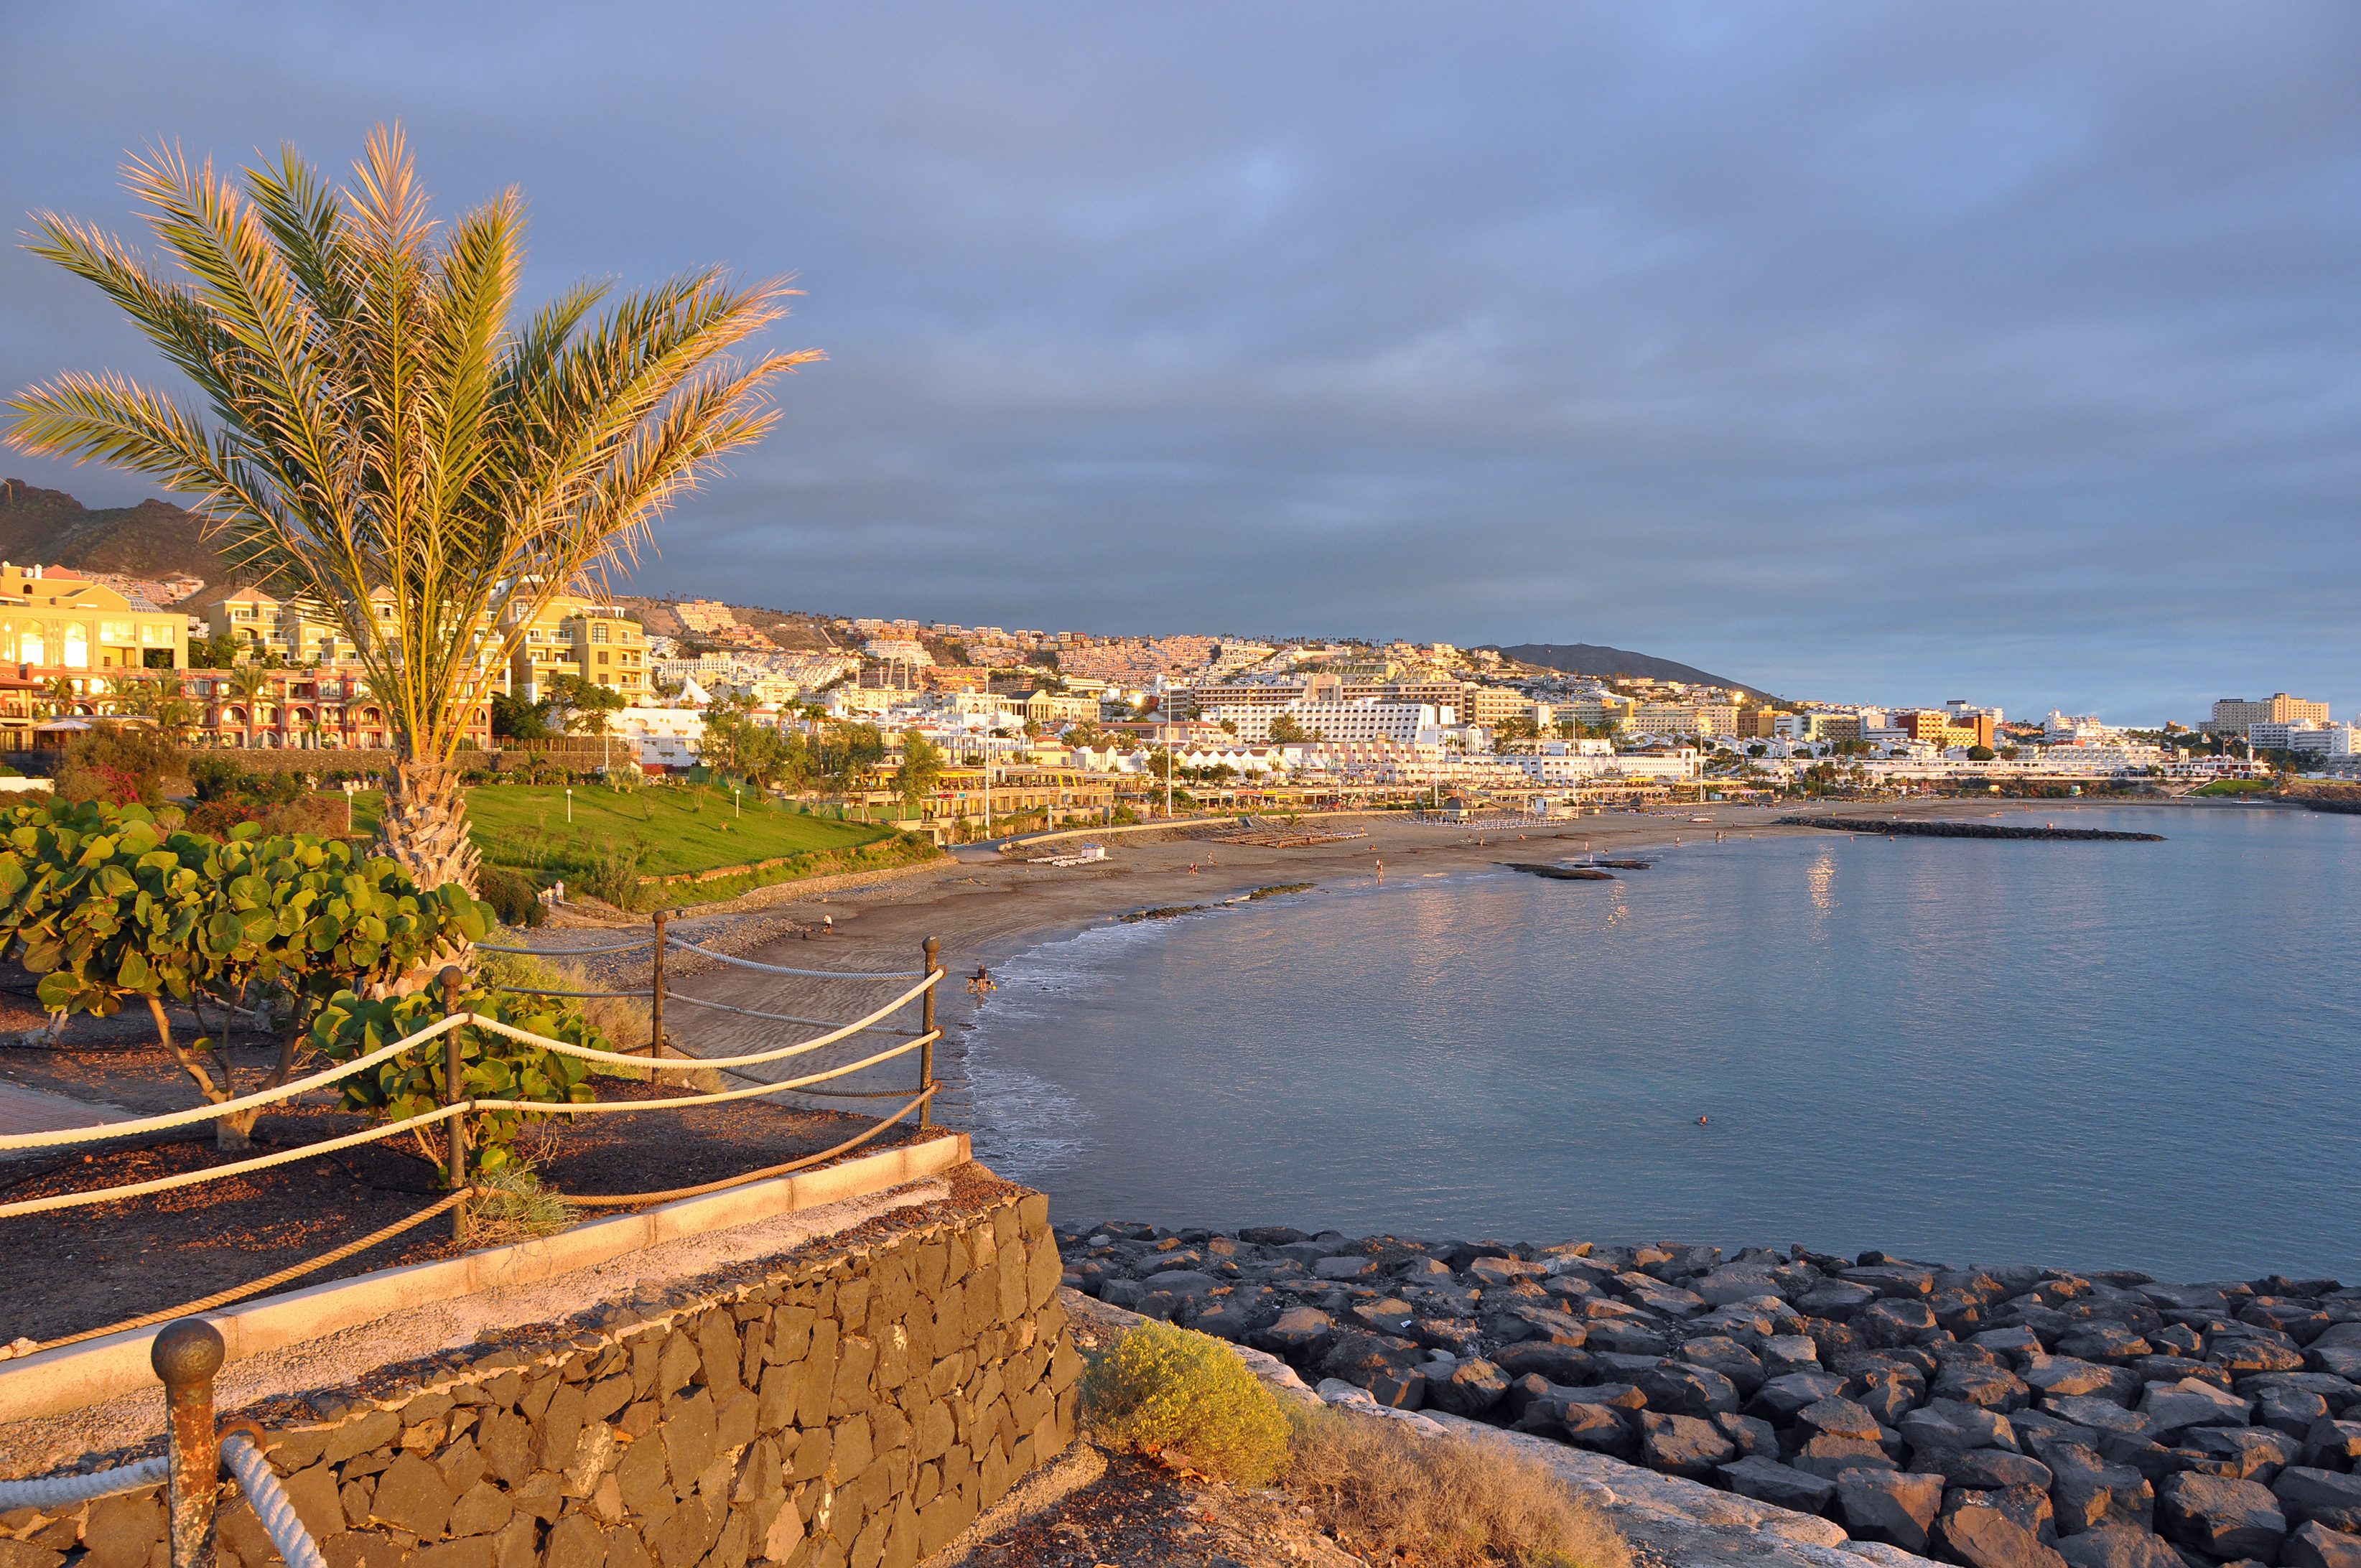 Best Tenerife Beaches: 5 Relaxing Spots For AFamily Car Trip